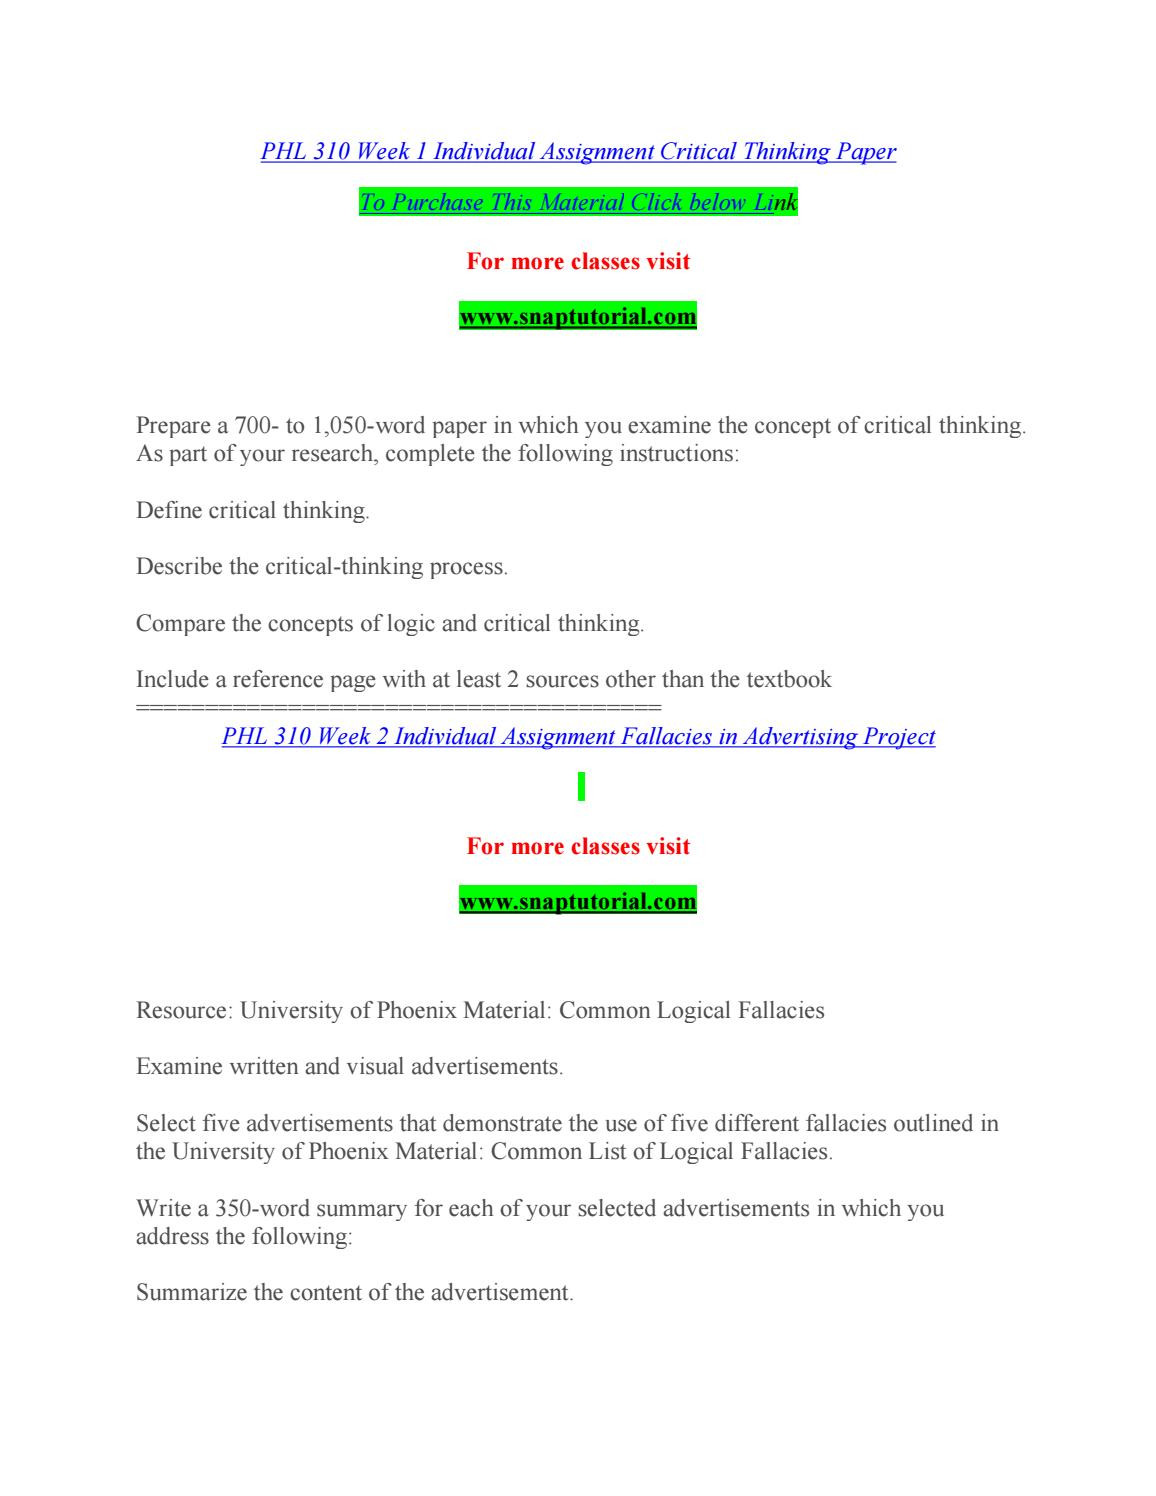 Logical Fallacies Worksheet with Answers Phl 310 by Saracitastephiekat87 issuu